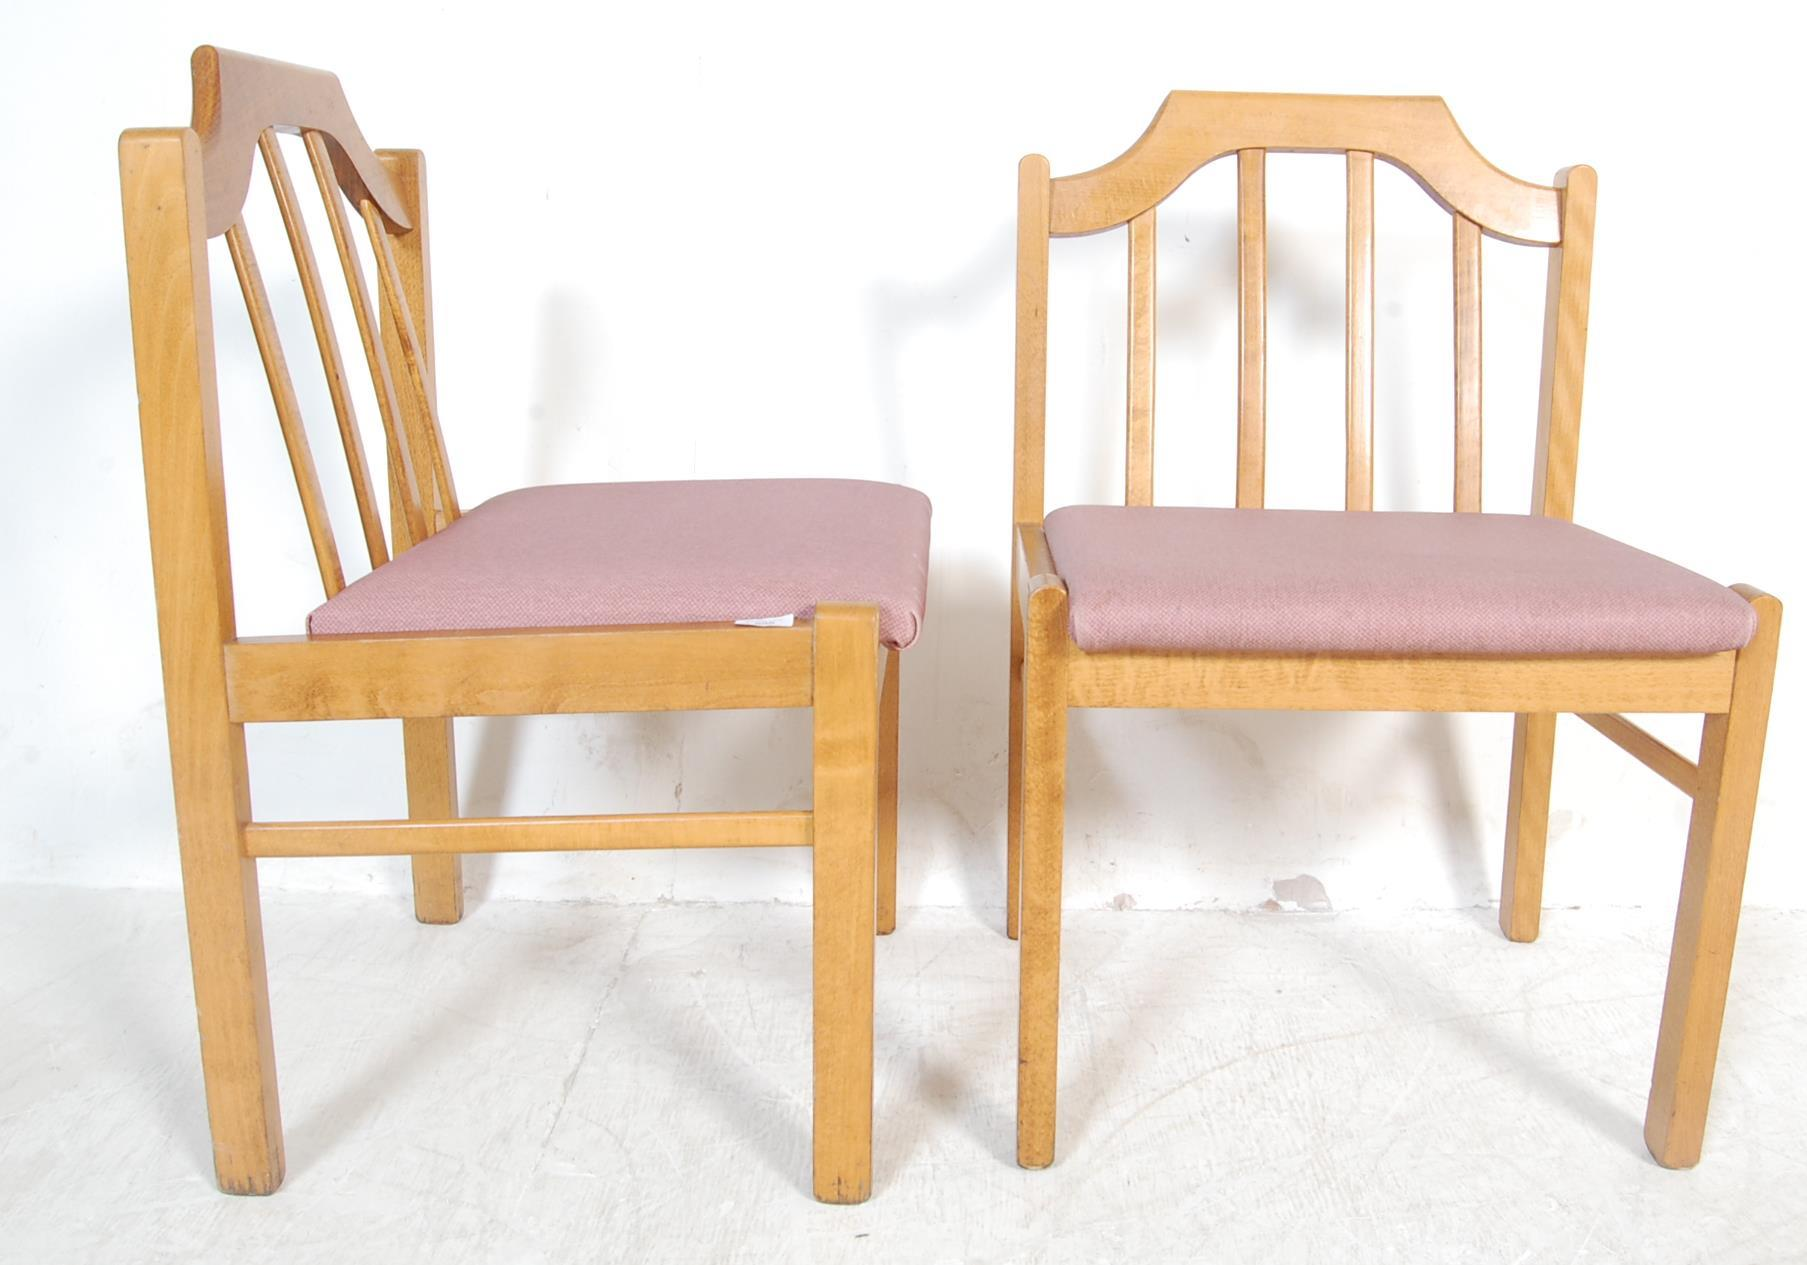 EIGHT VINTAGE GOLDEN OAK DINING CHAIRS - Image 5 of 8